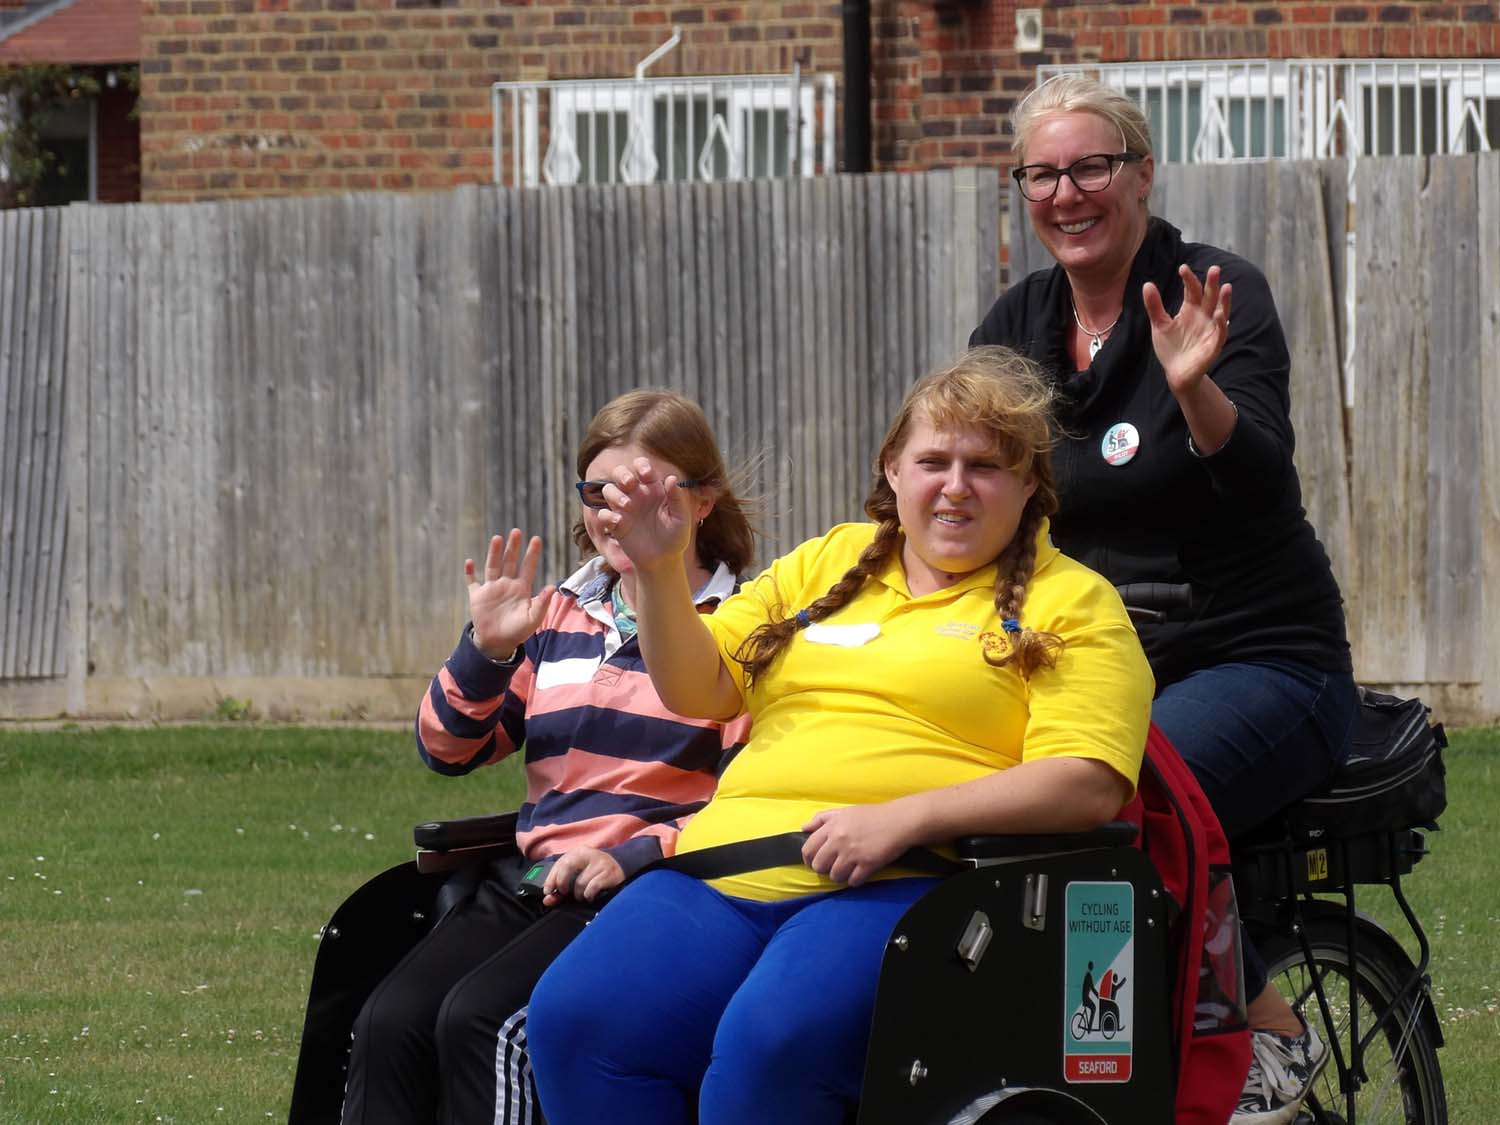 three people waving, two in wheelchairs